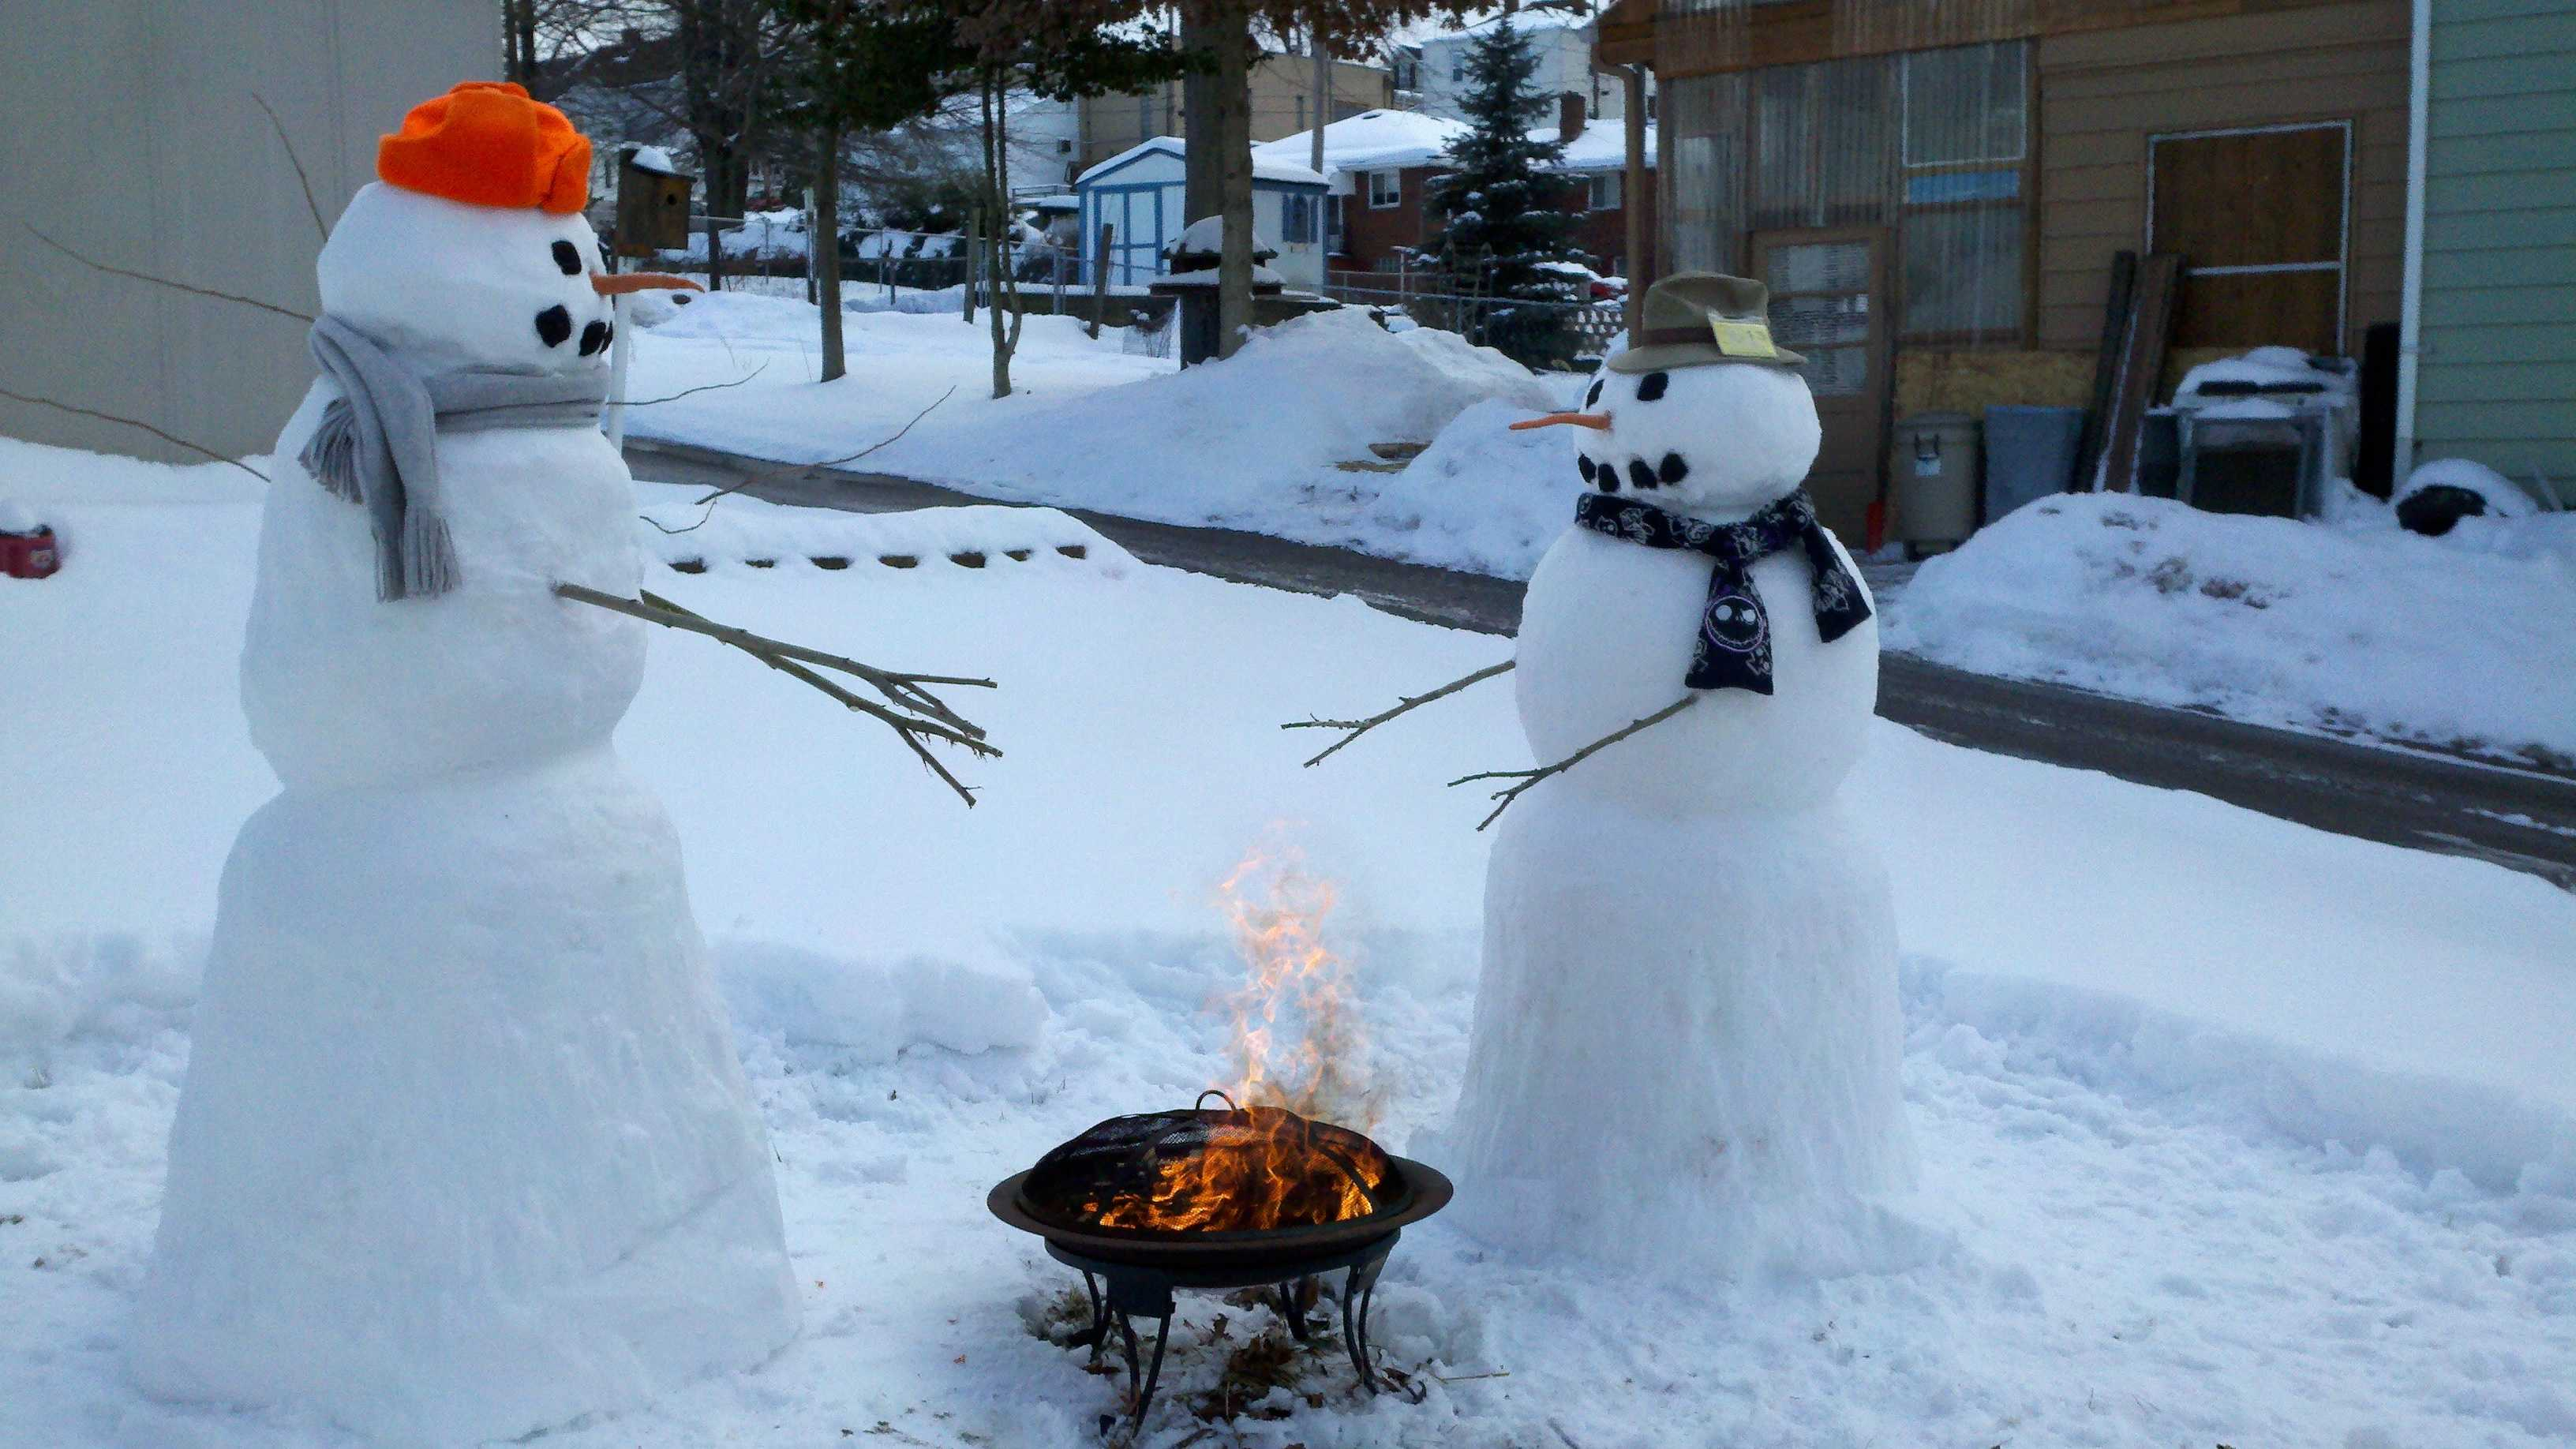 How cold was it? Even snowmen were keeping warm.